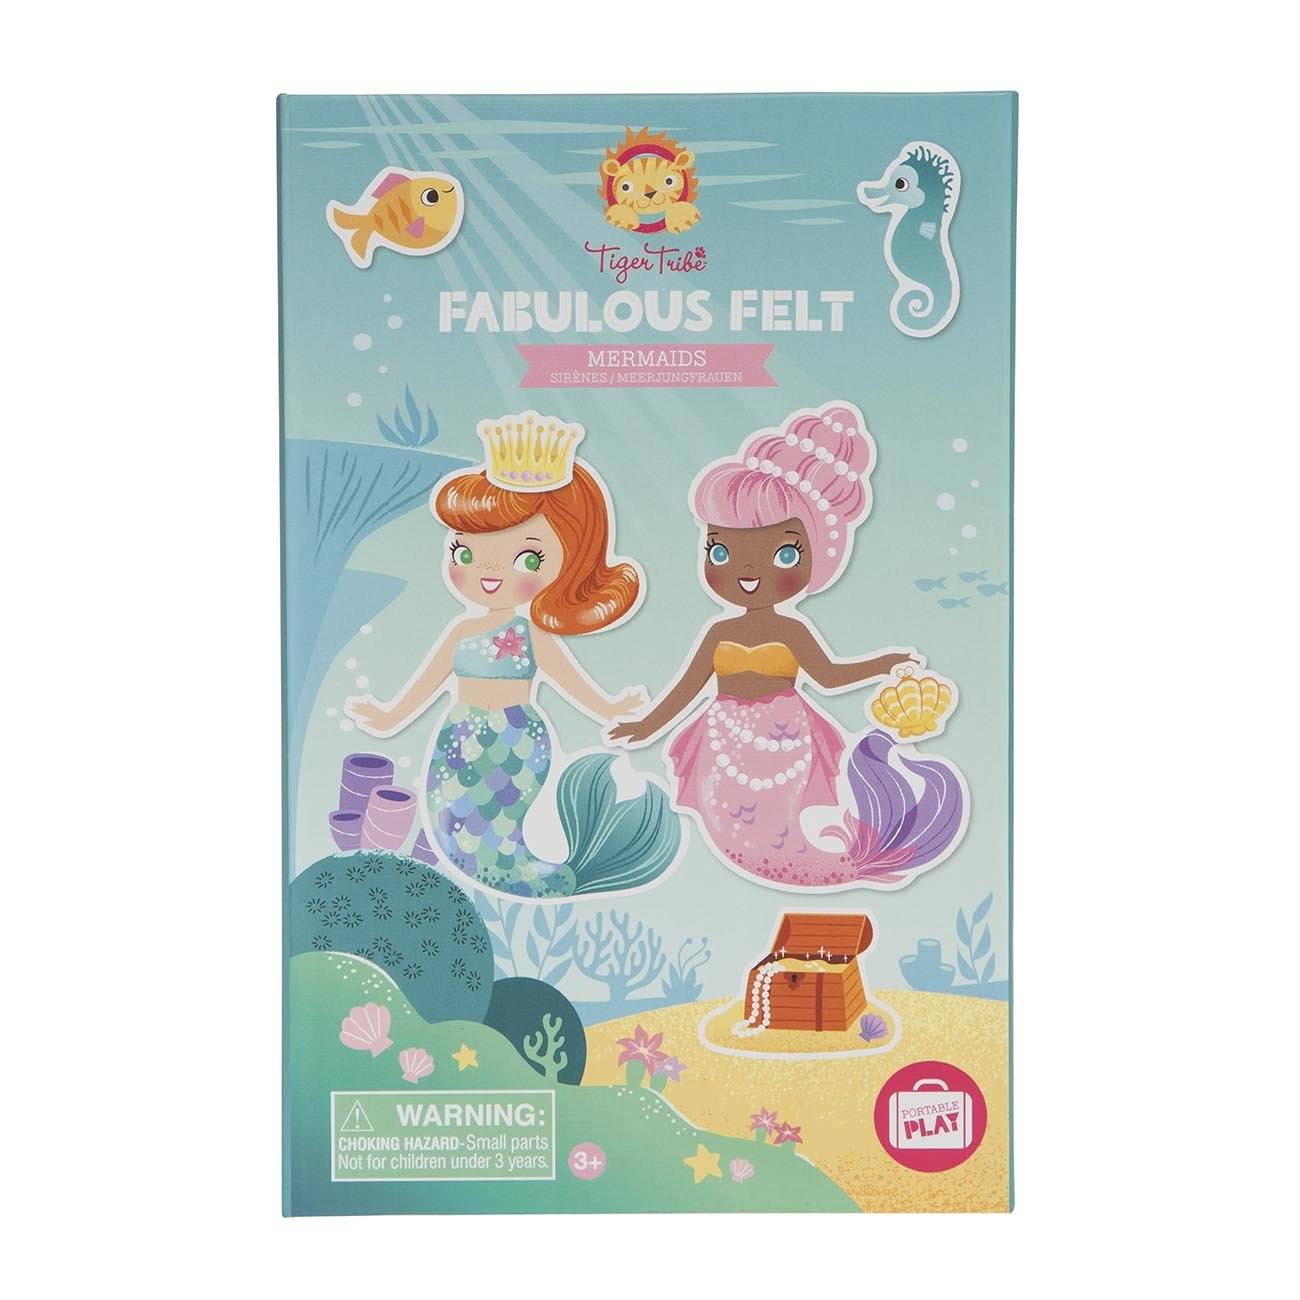 Fabulous Felt (Mermaids)